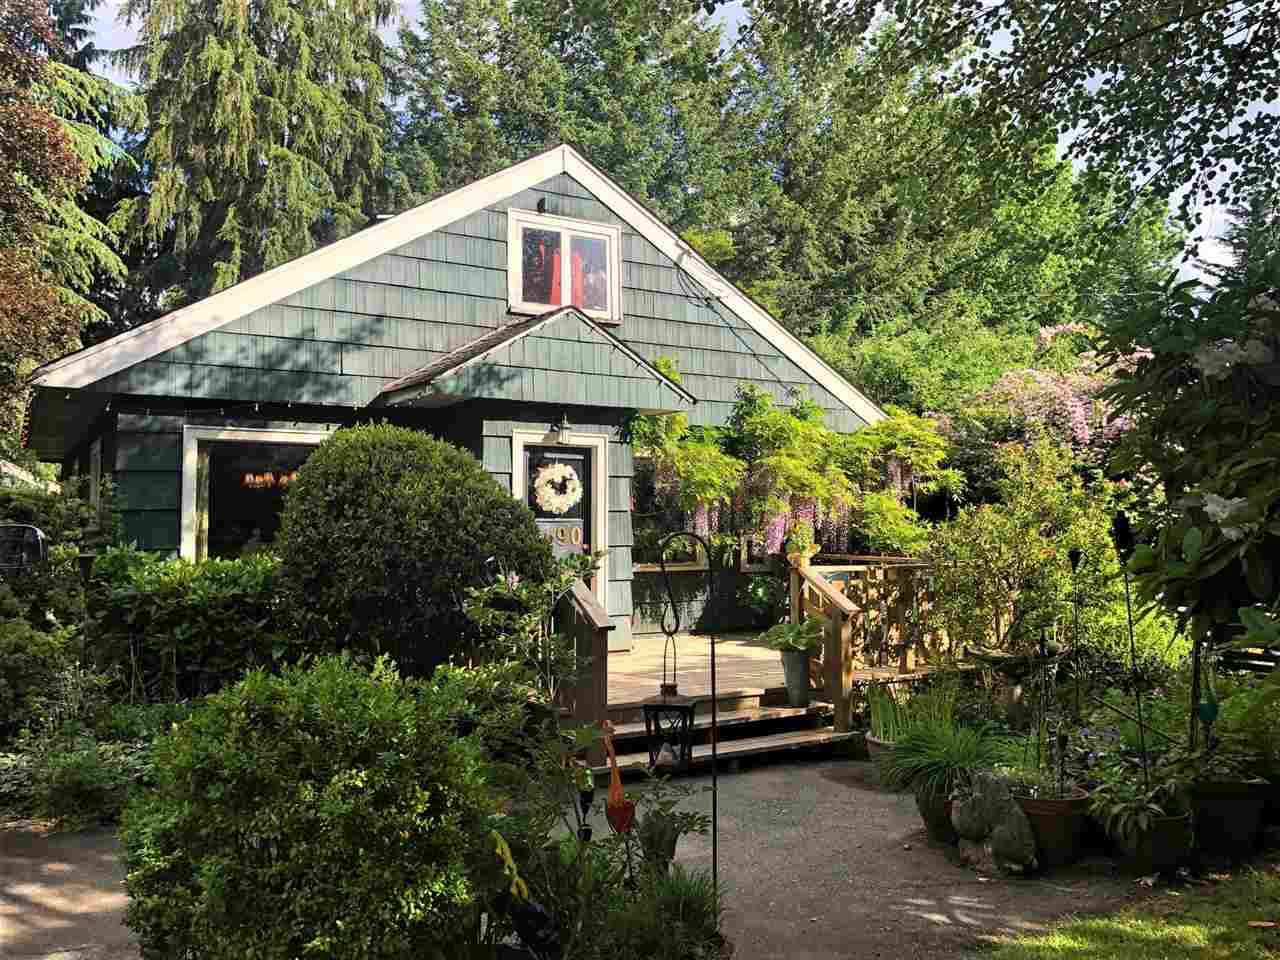 """Main Photo: 8890 BARTLETT Street in Langley: Fort Langley House for sale in """"Fort Langley"""" : MLS®# R2477510"""